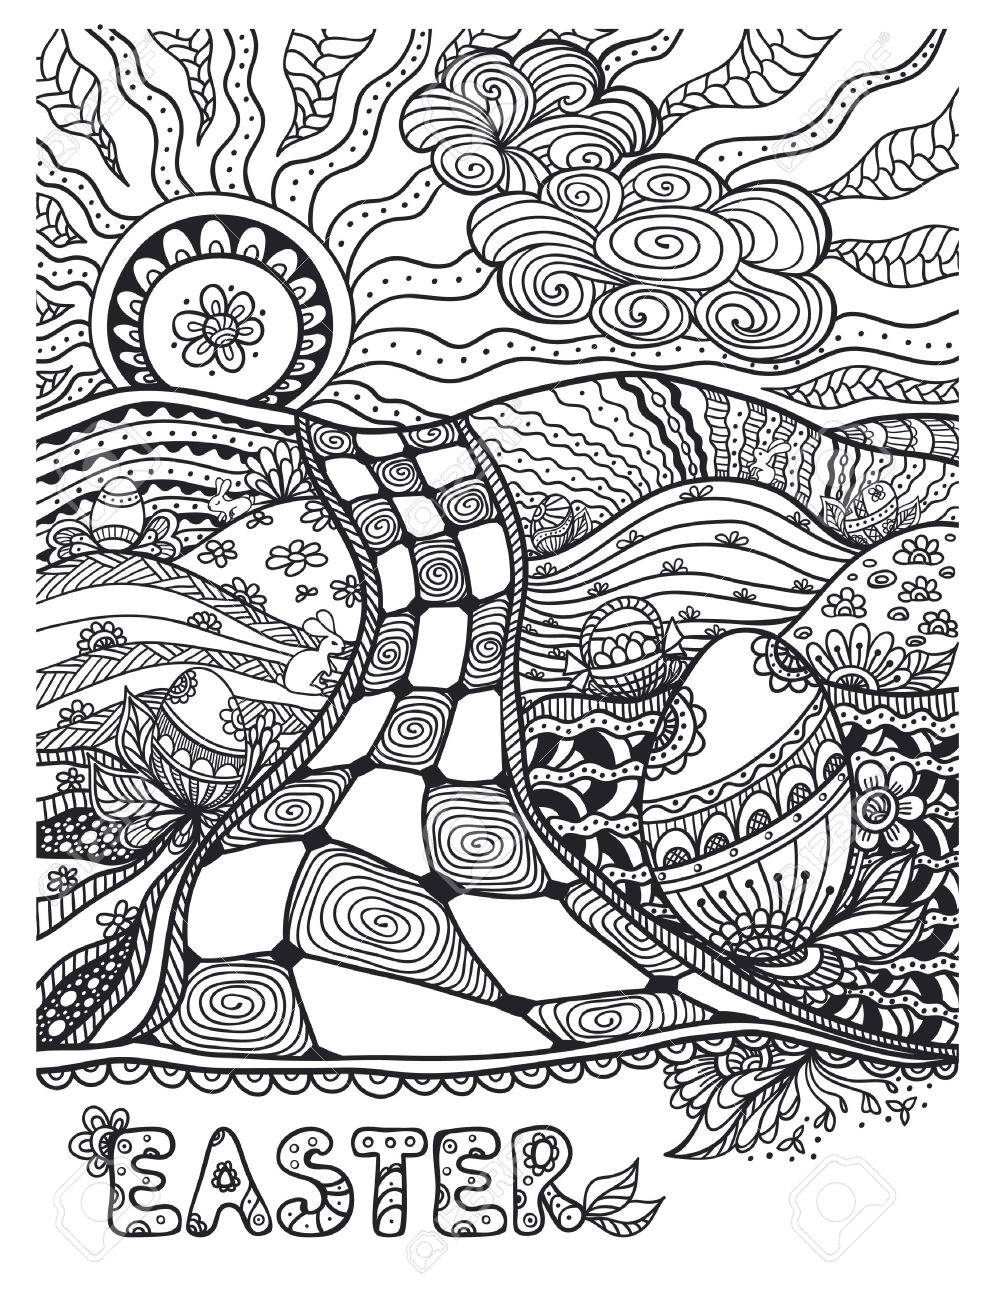 Zen Doodle Easter Landscape With Eggs Rabbits Black On White